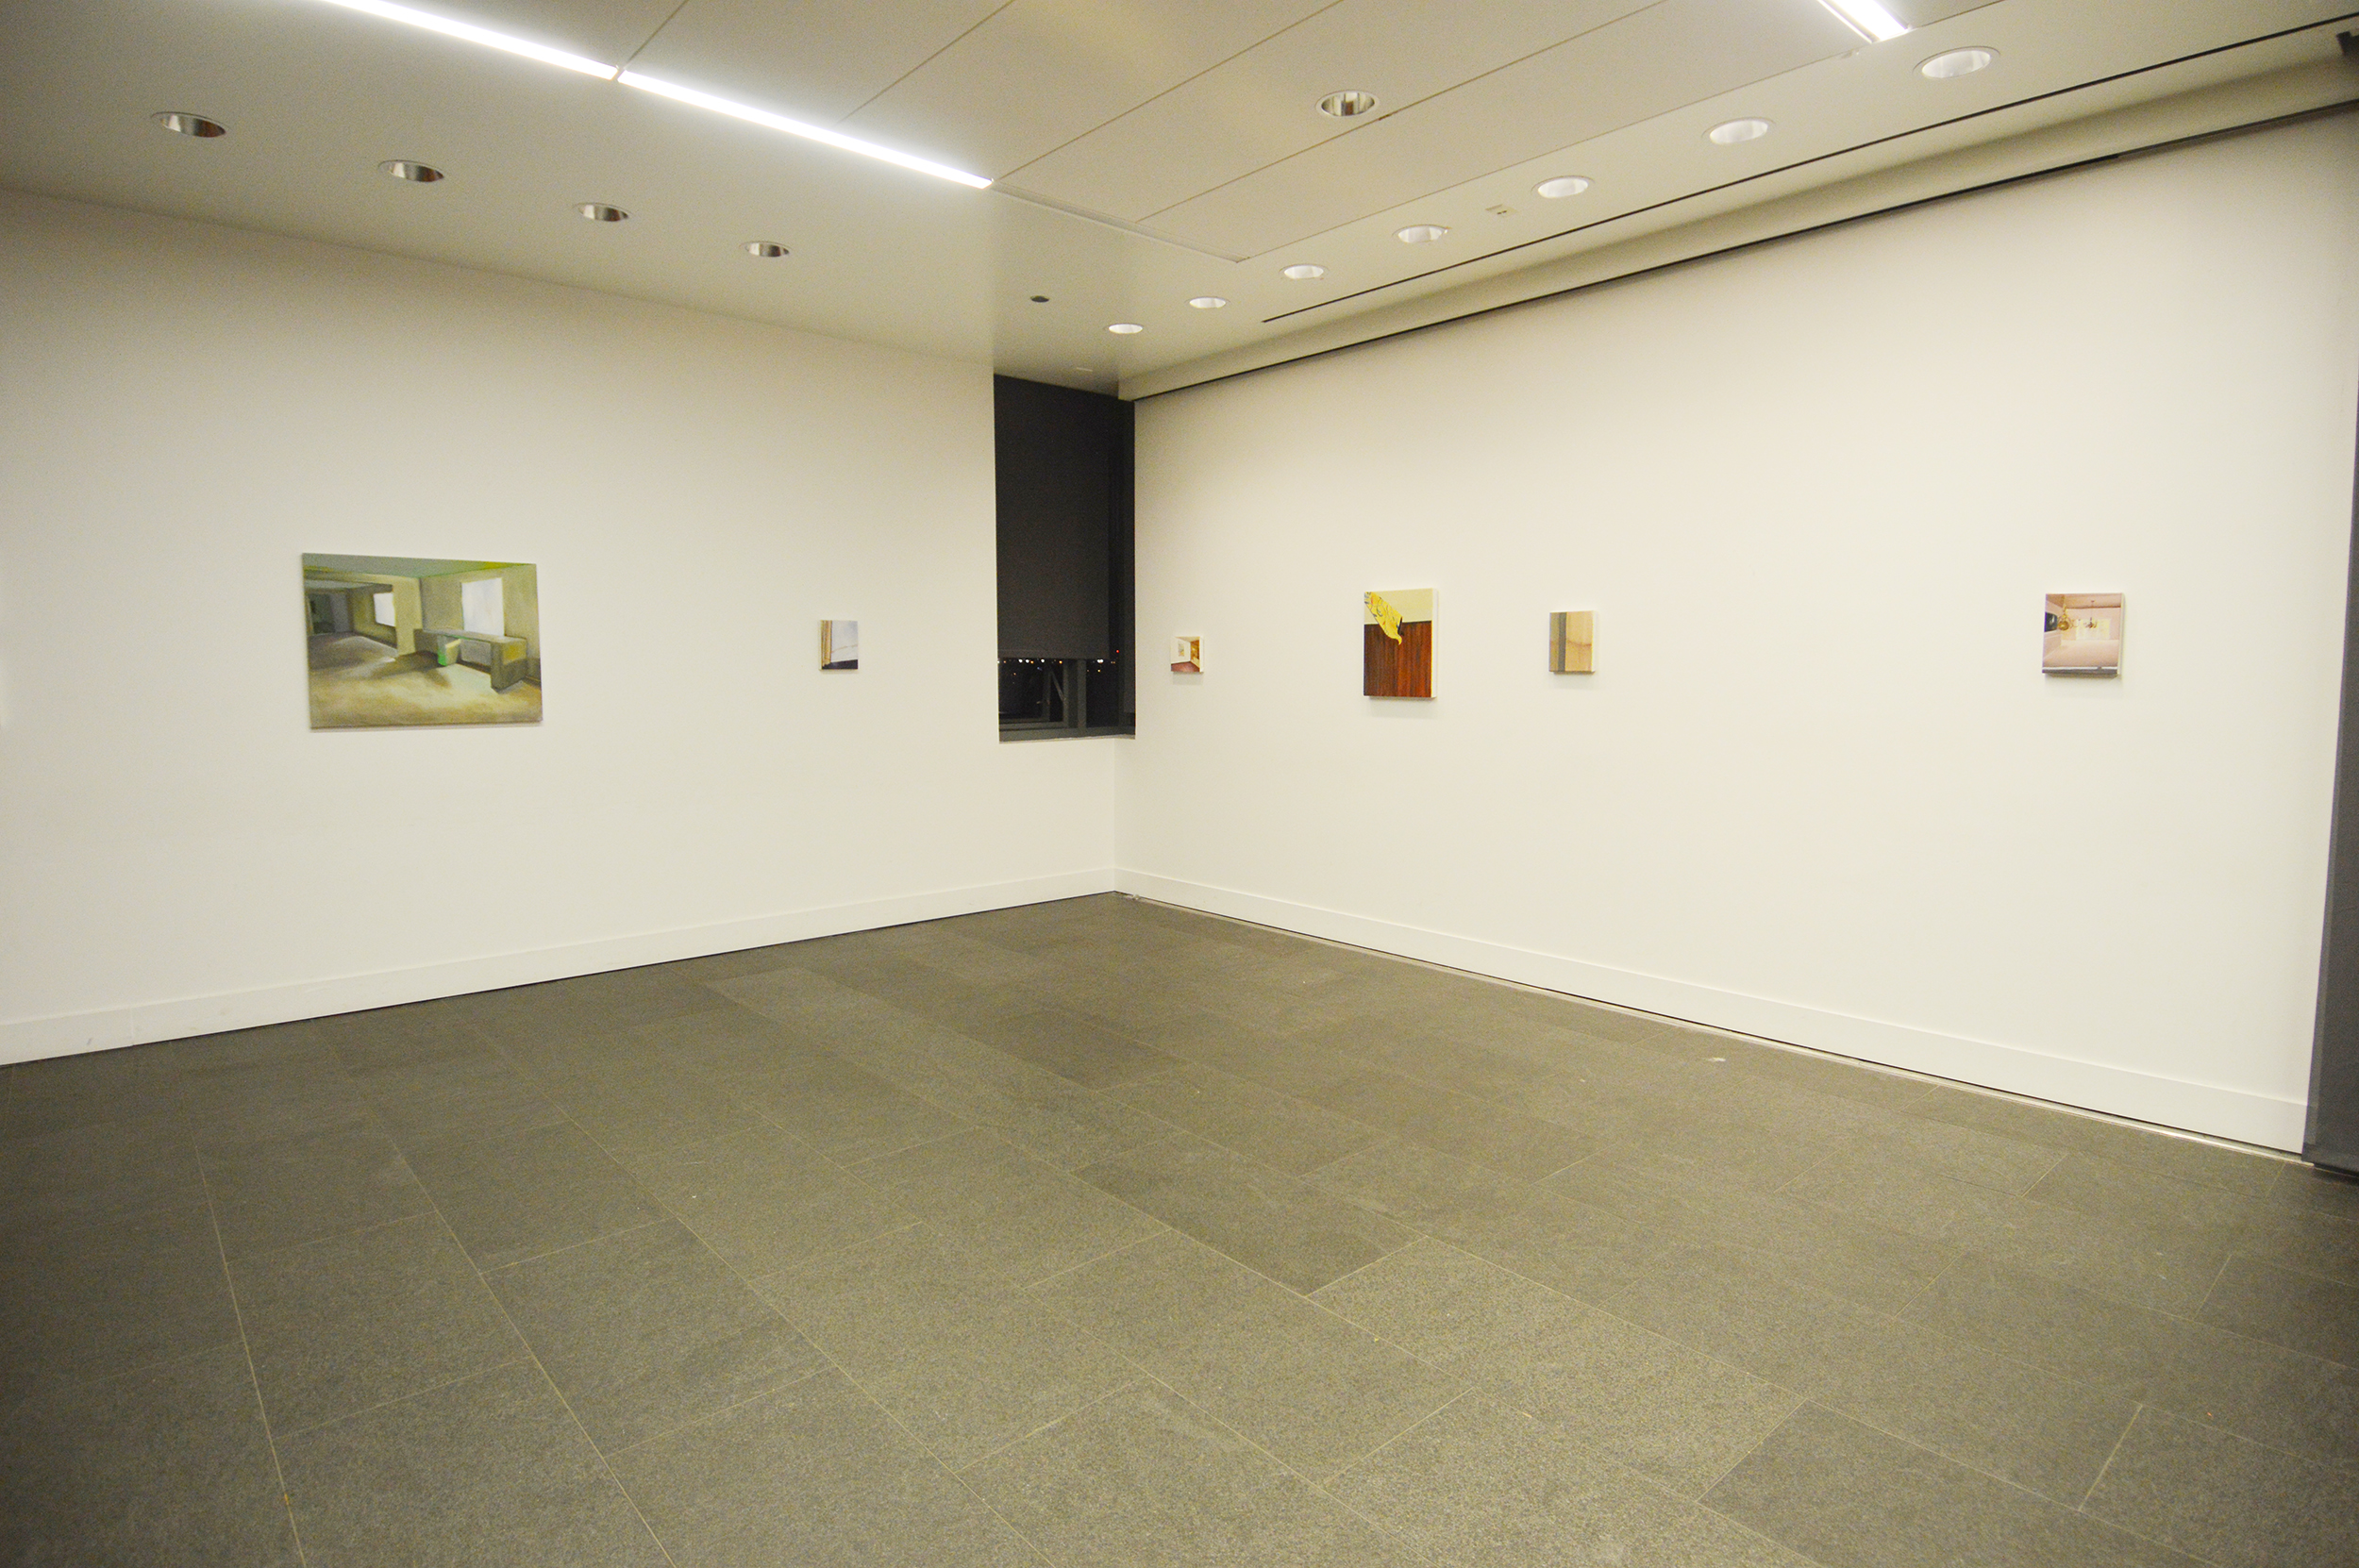 Installation view, Logan Center for the Arts